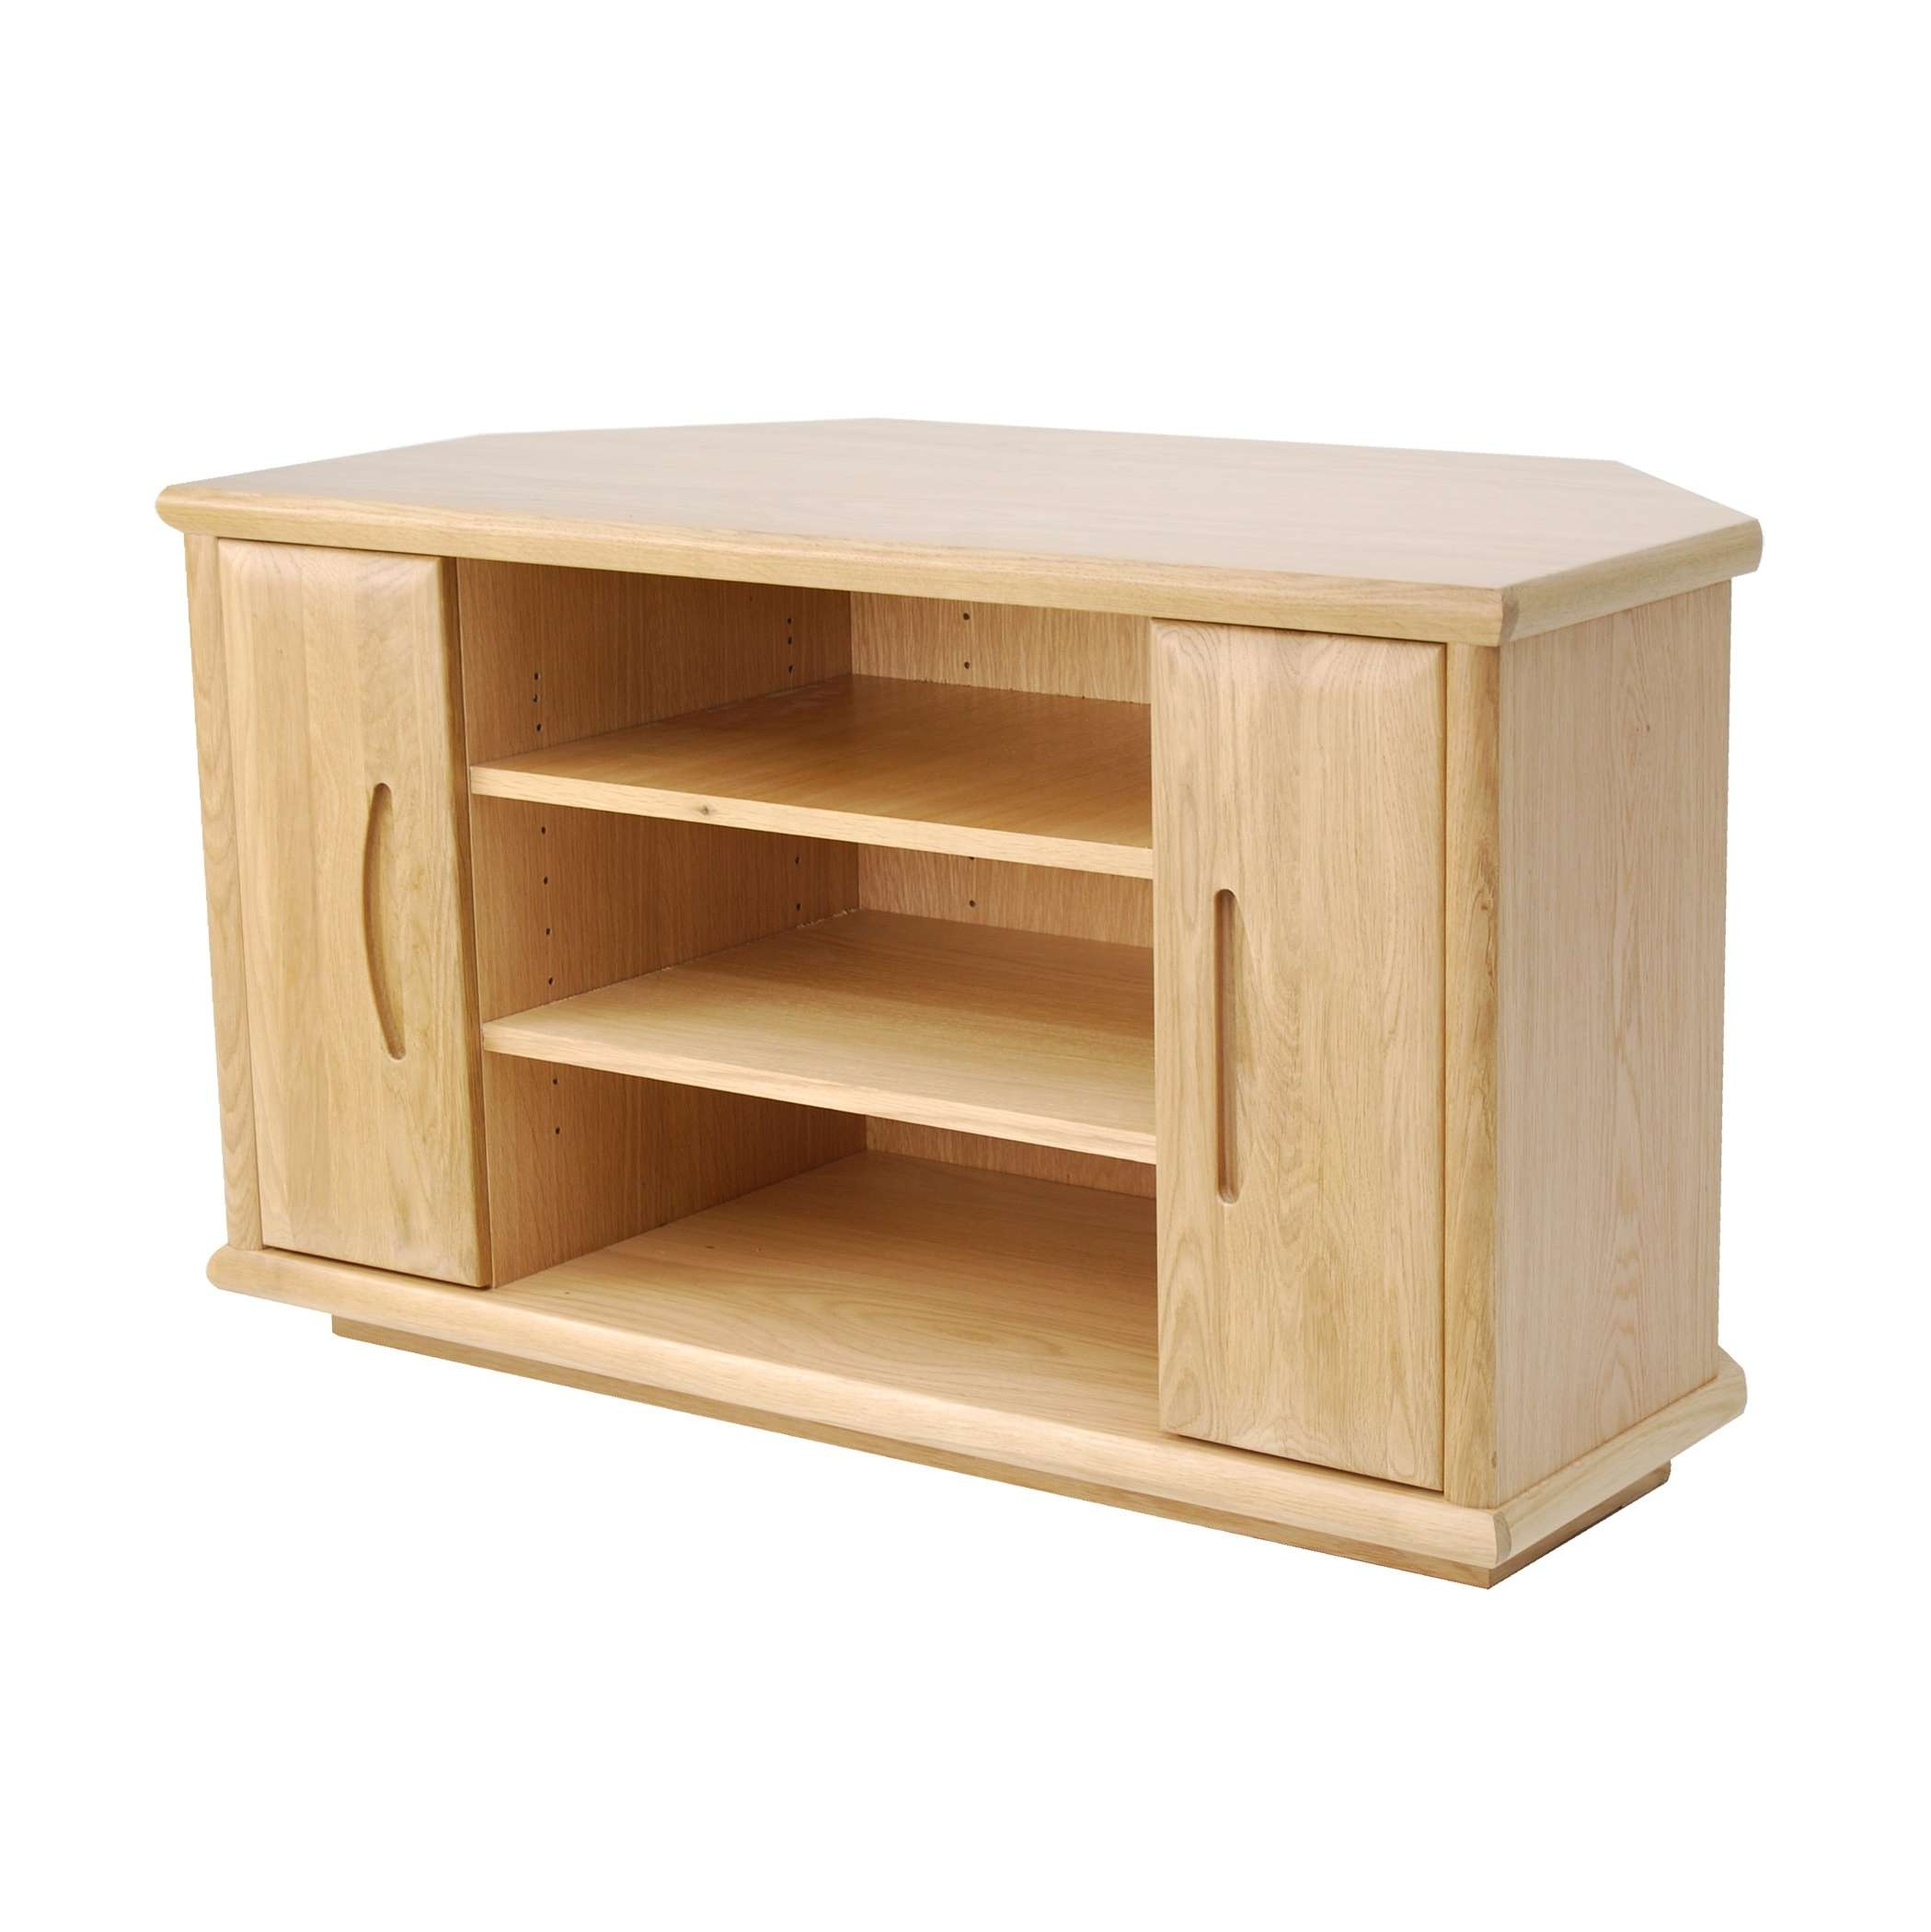 Oak Corner Tv Stand | Gola Furniture Uk Within Oak Corner Tv Cabinets (View 18 of 20)